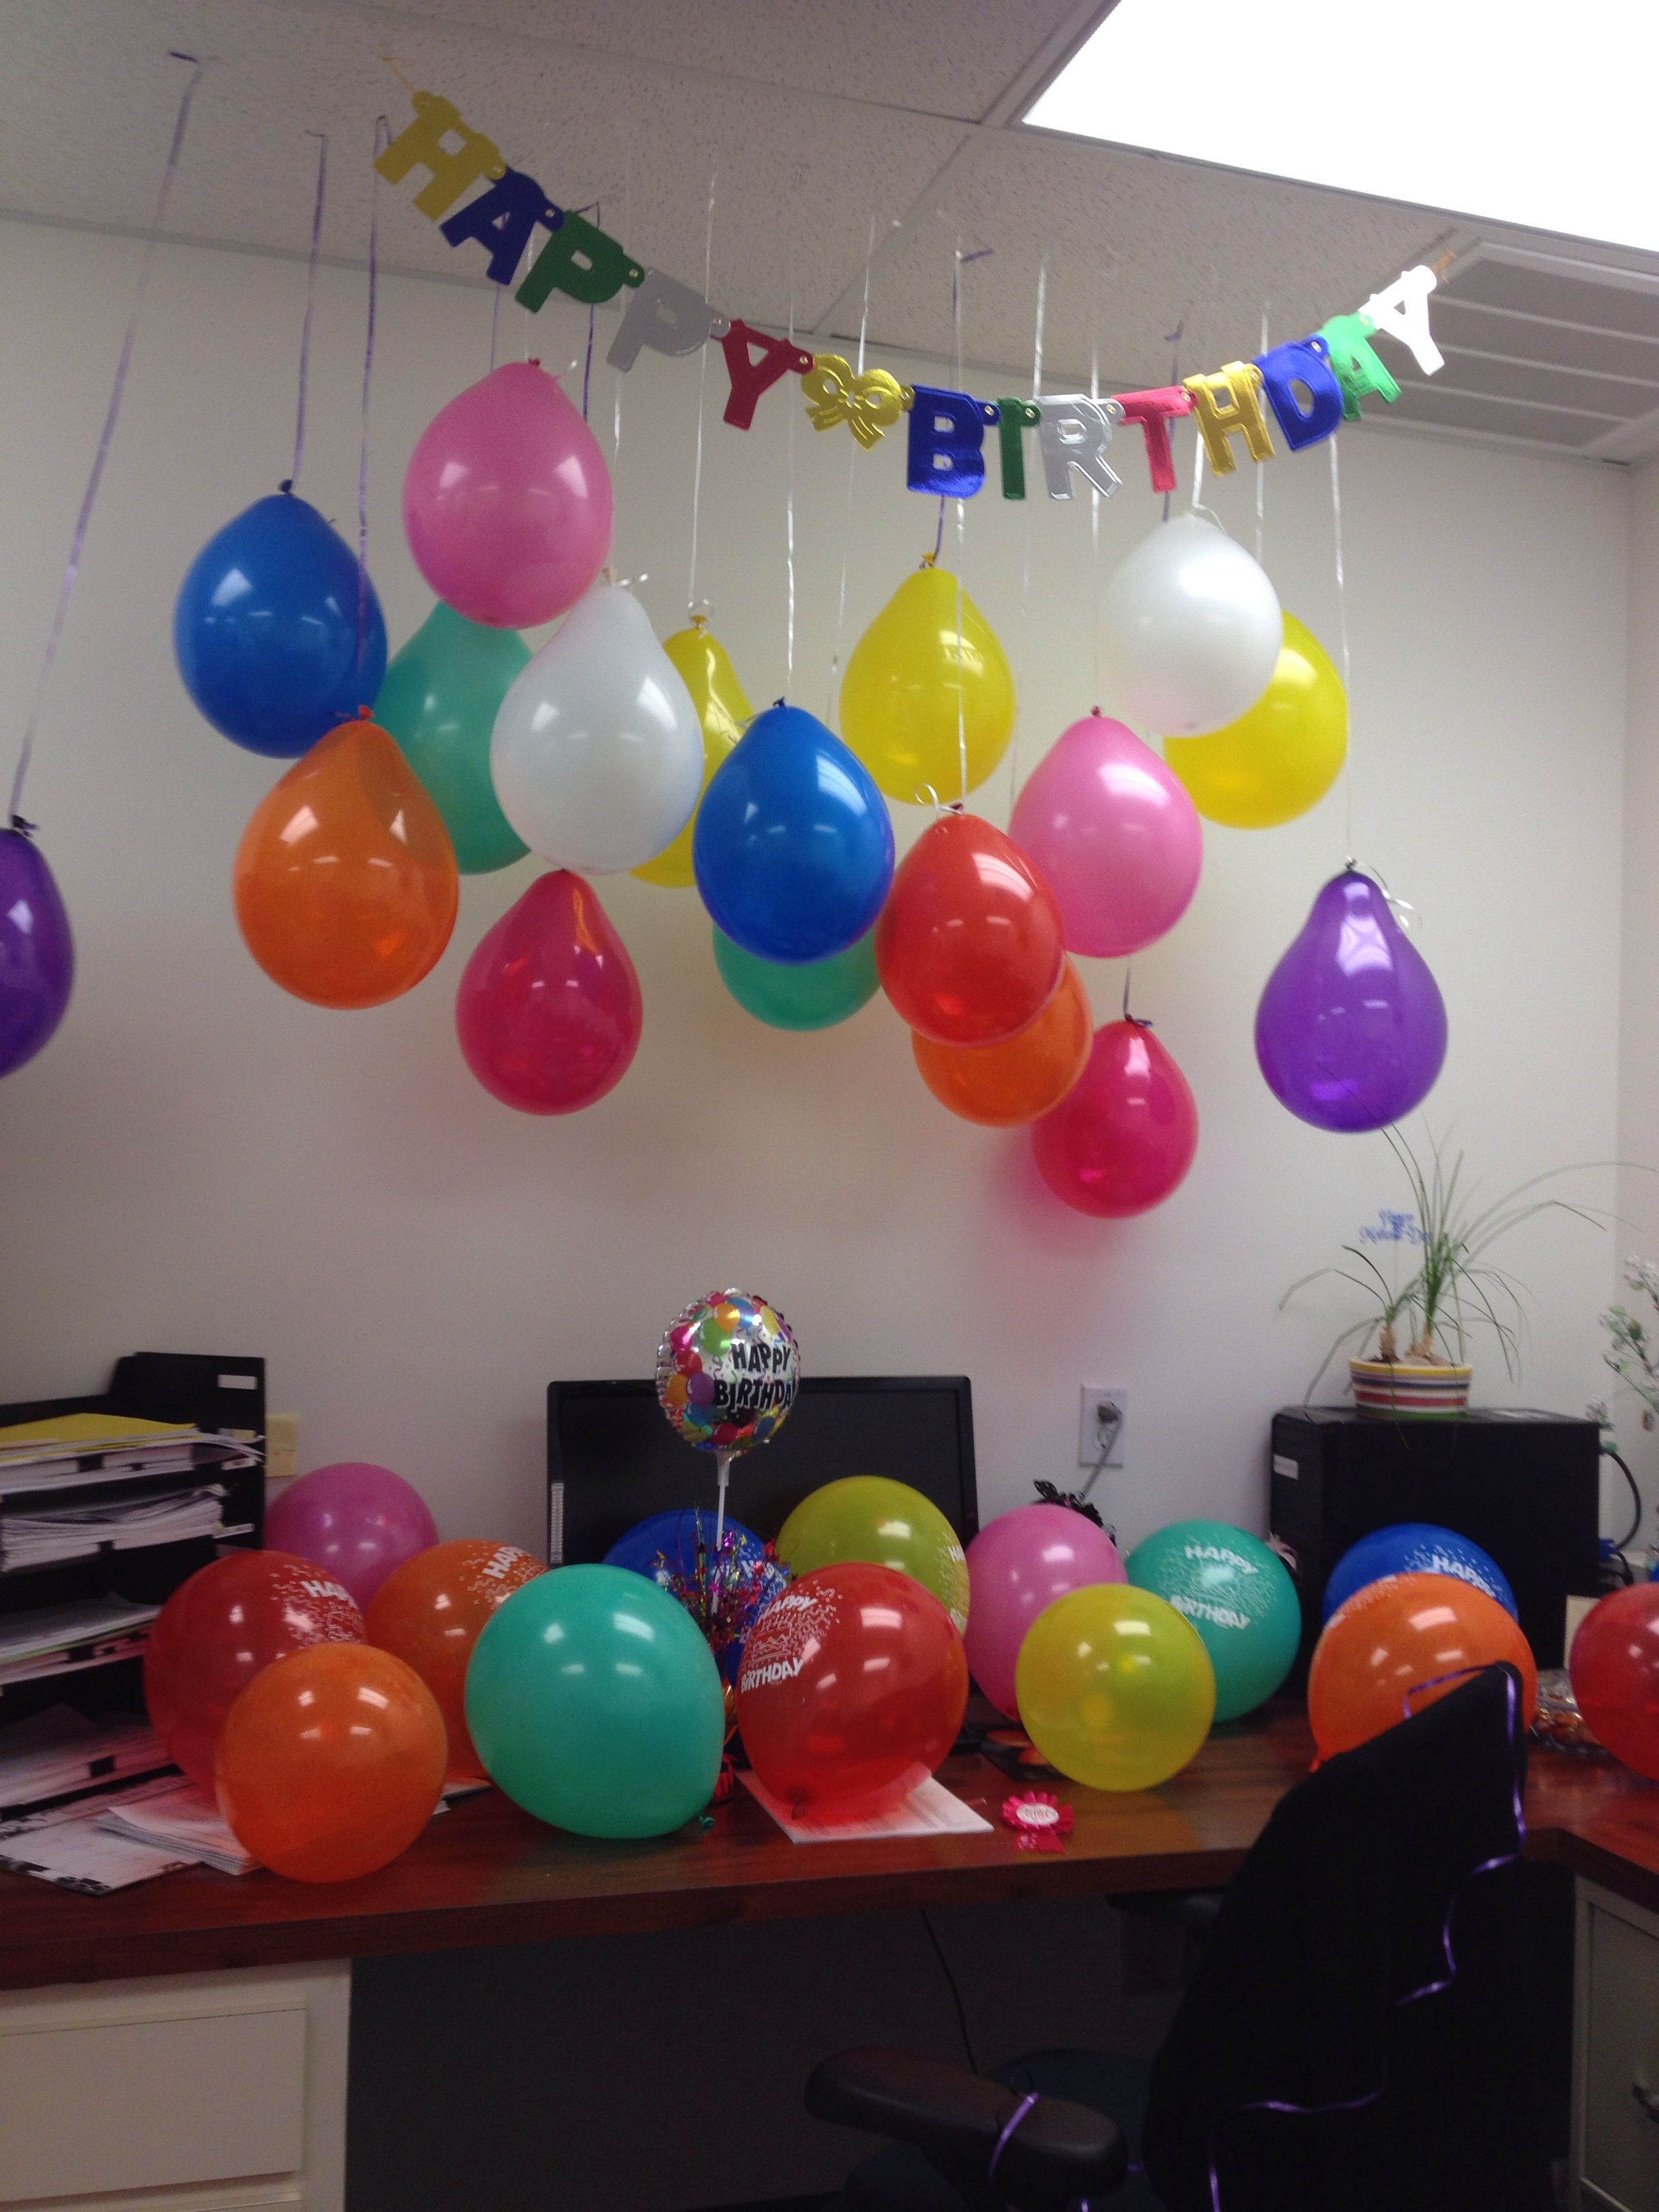 Best ideas about Office Birthday Decorations . Save or Pin Birthday decoration for an office Now.